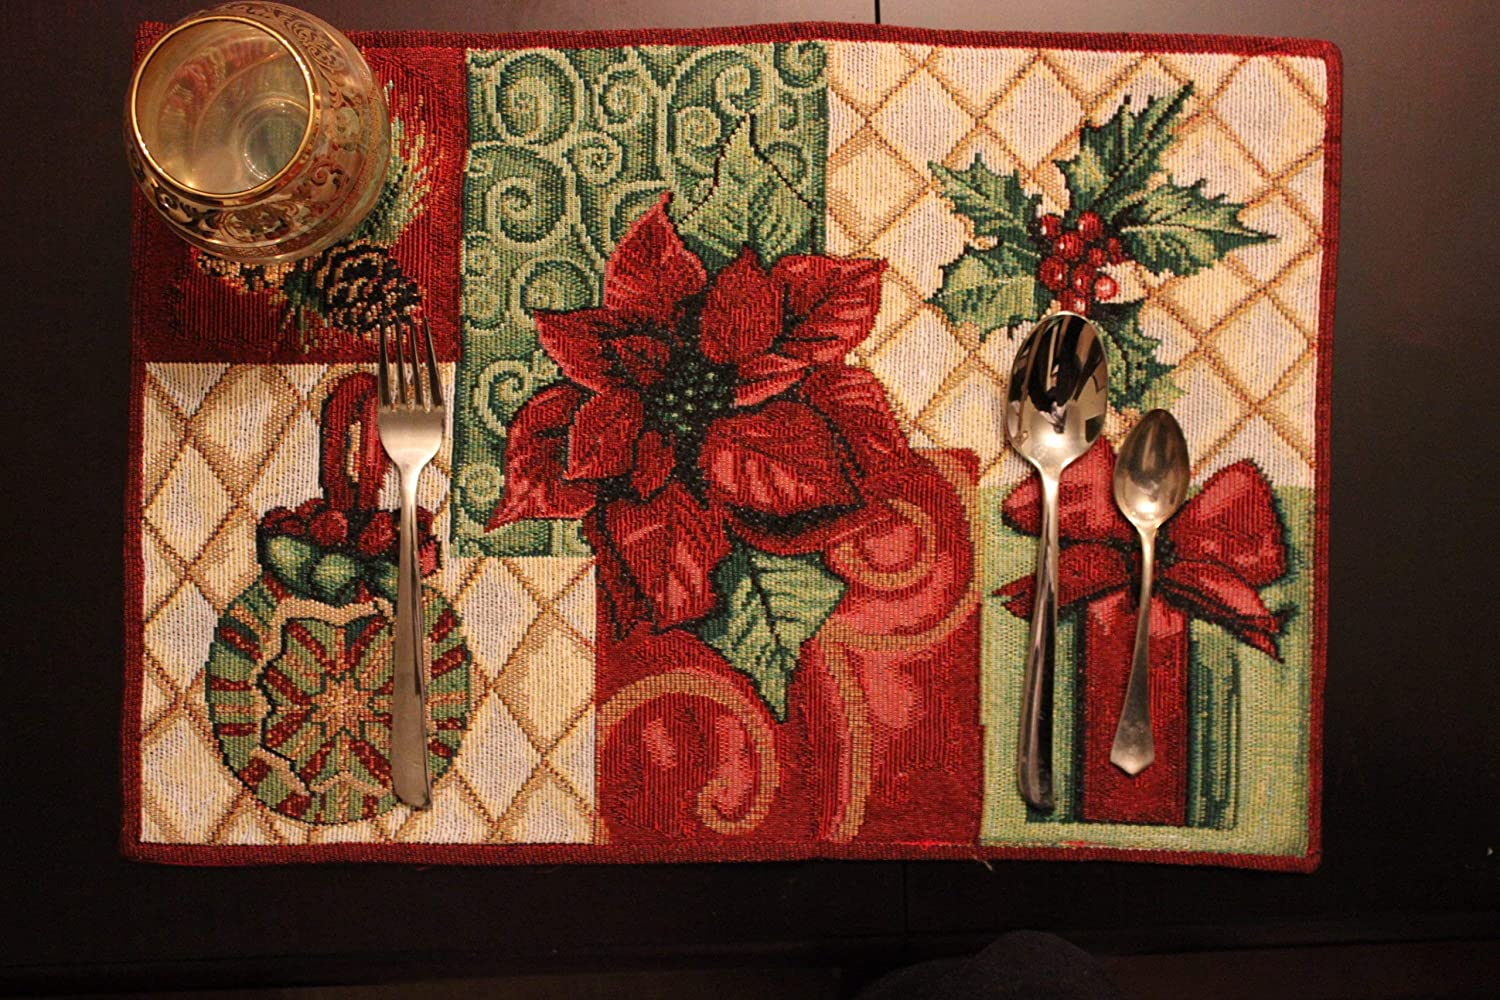 Tache Christmas Poinsetta Elegant Festive Holiday Tidings Woven Tapestry Placemats Set of 4